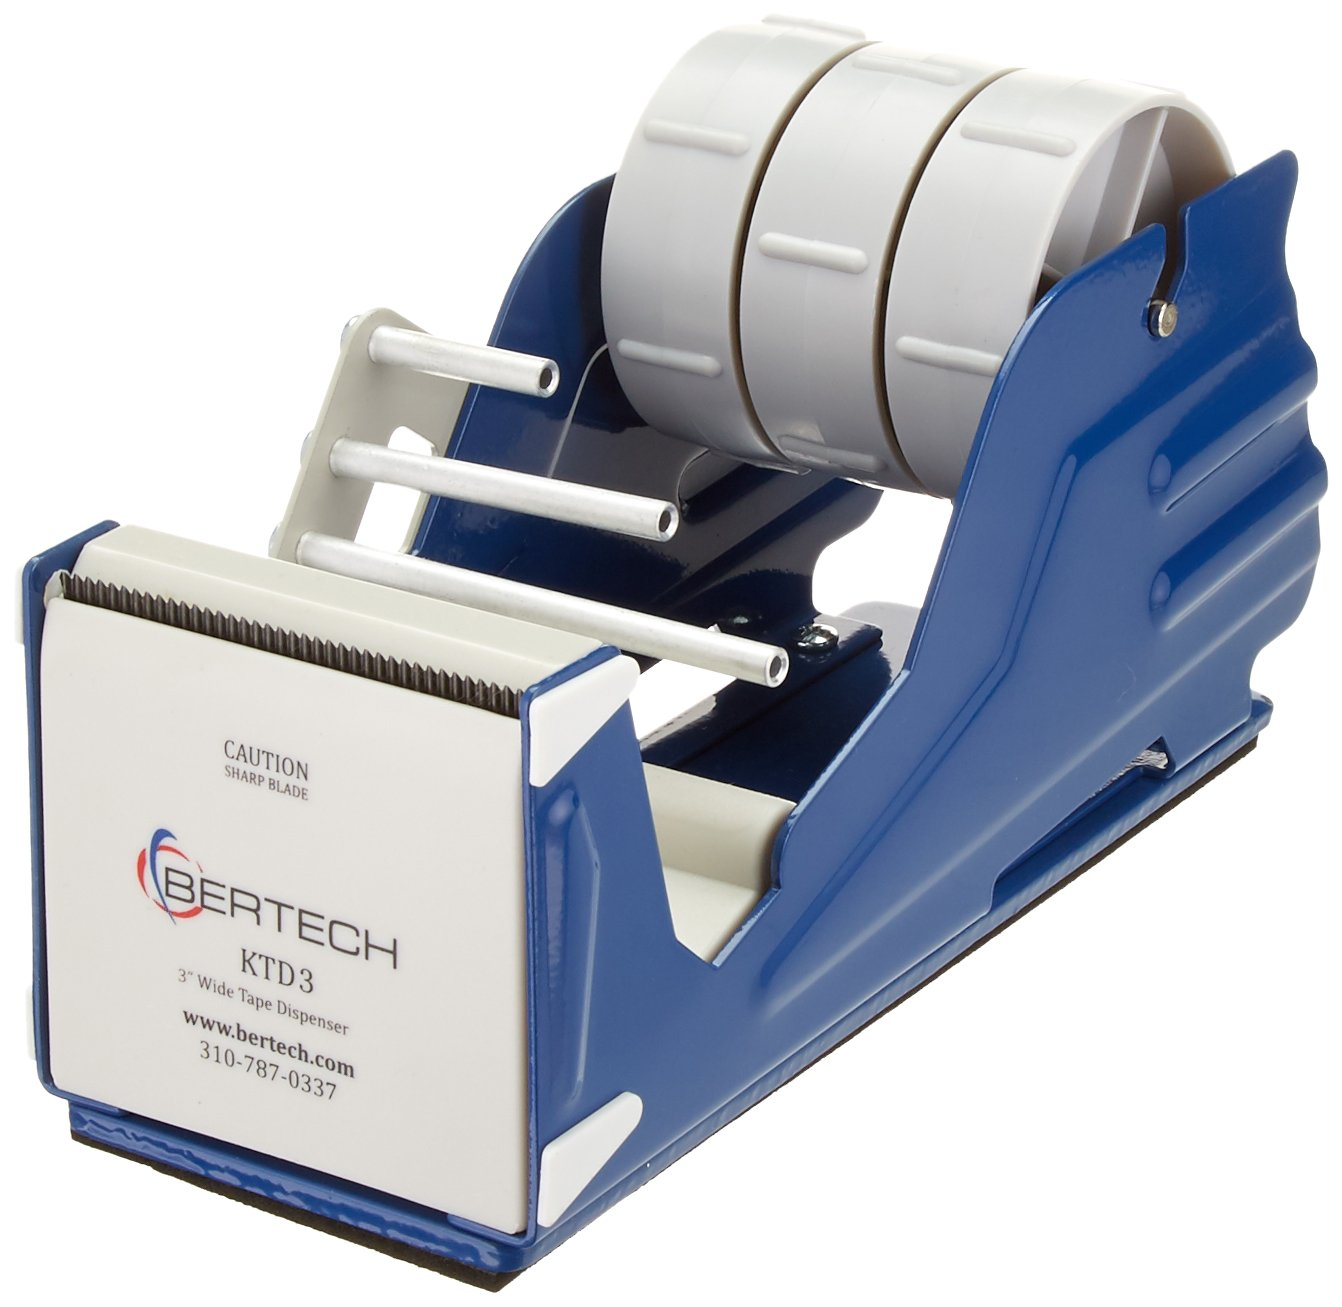 Bertech General Purpose Tape Dispenser, For 1' Wide Tapes For 1 Wide Tapes KTD1